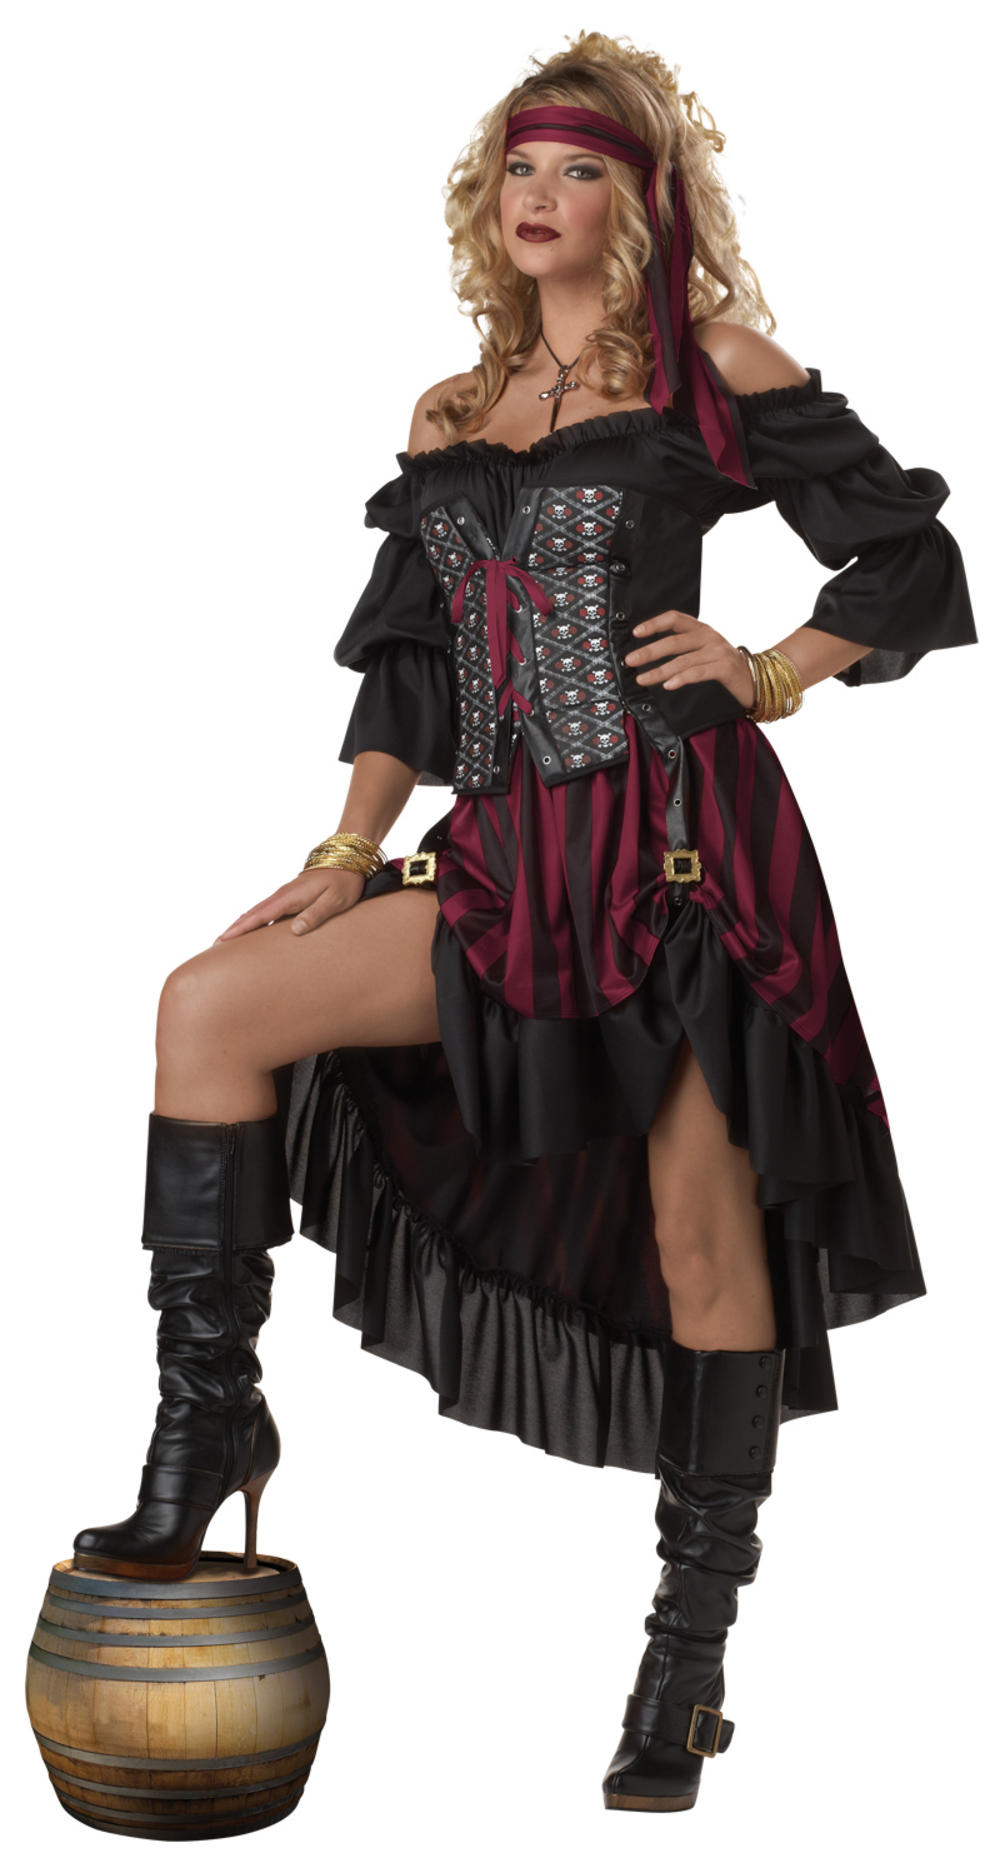 pirate wench pictures pirate wench costume pirate costumes mega fancy dress 8150